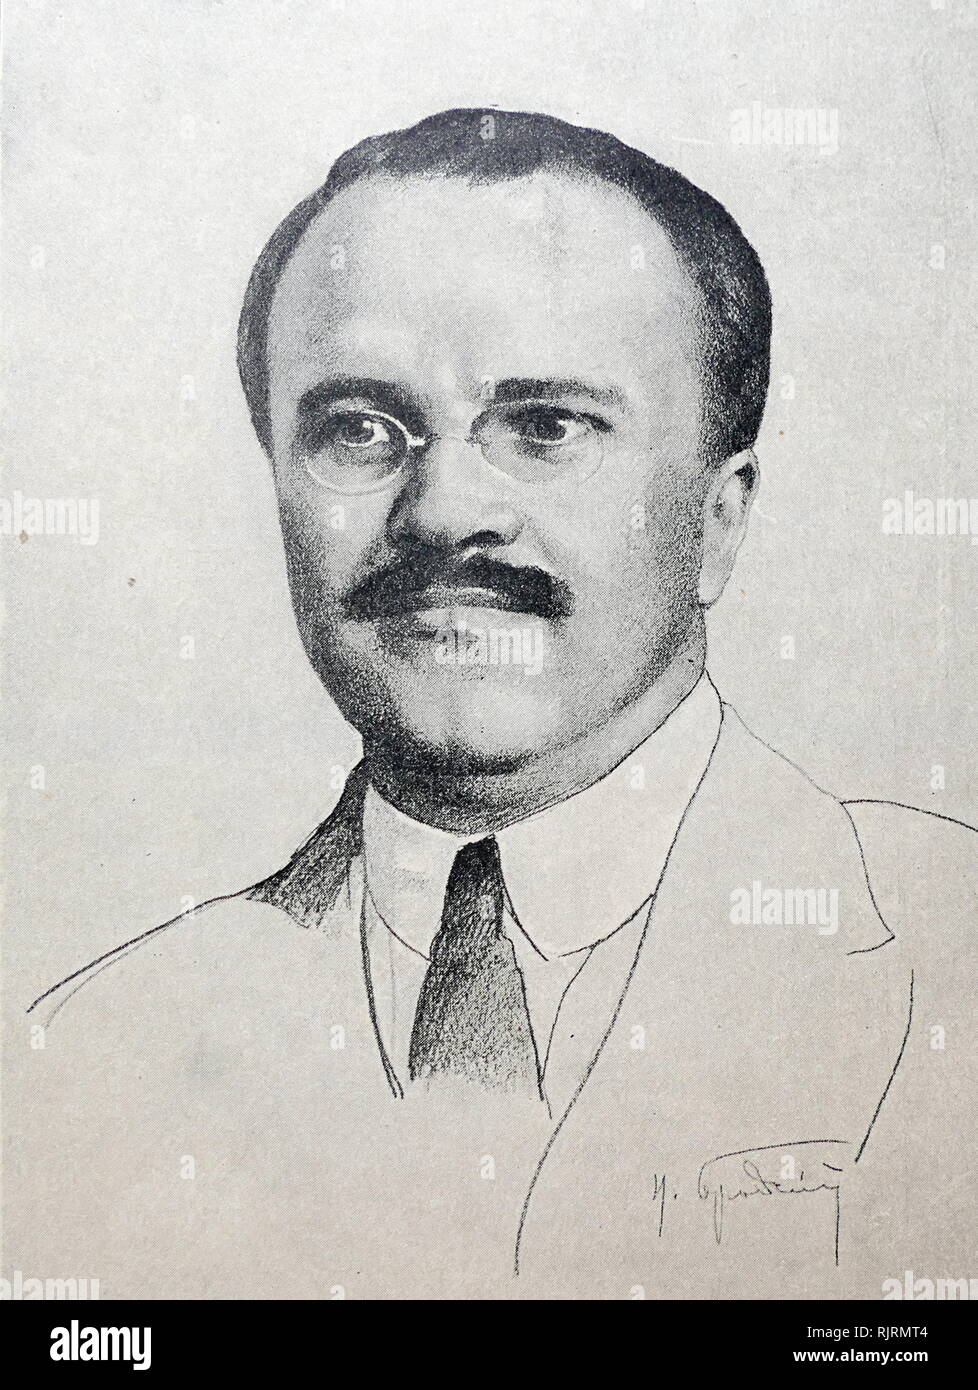 Drawing of Vyacheslav Mikhailovich Molotov (1890 - 1986); Soviet politician and diplomat, and a leading figure in the Soviet government from the 1920s. He rose to power as a protege of Joseph Stalin. Molotov served as Chairman of the Council of People's Commissars (Premier) from 1930 to 1941, and as Minister of Foreign Affairs from 1939 to 1949 and from 1953 to 1956. He served as First Deputy Premier from 1942 to 1957, when he was dismissed from the Presidium of the Central Committee by Nikita Khrushchev - Stock Image